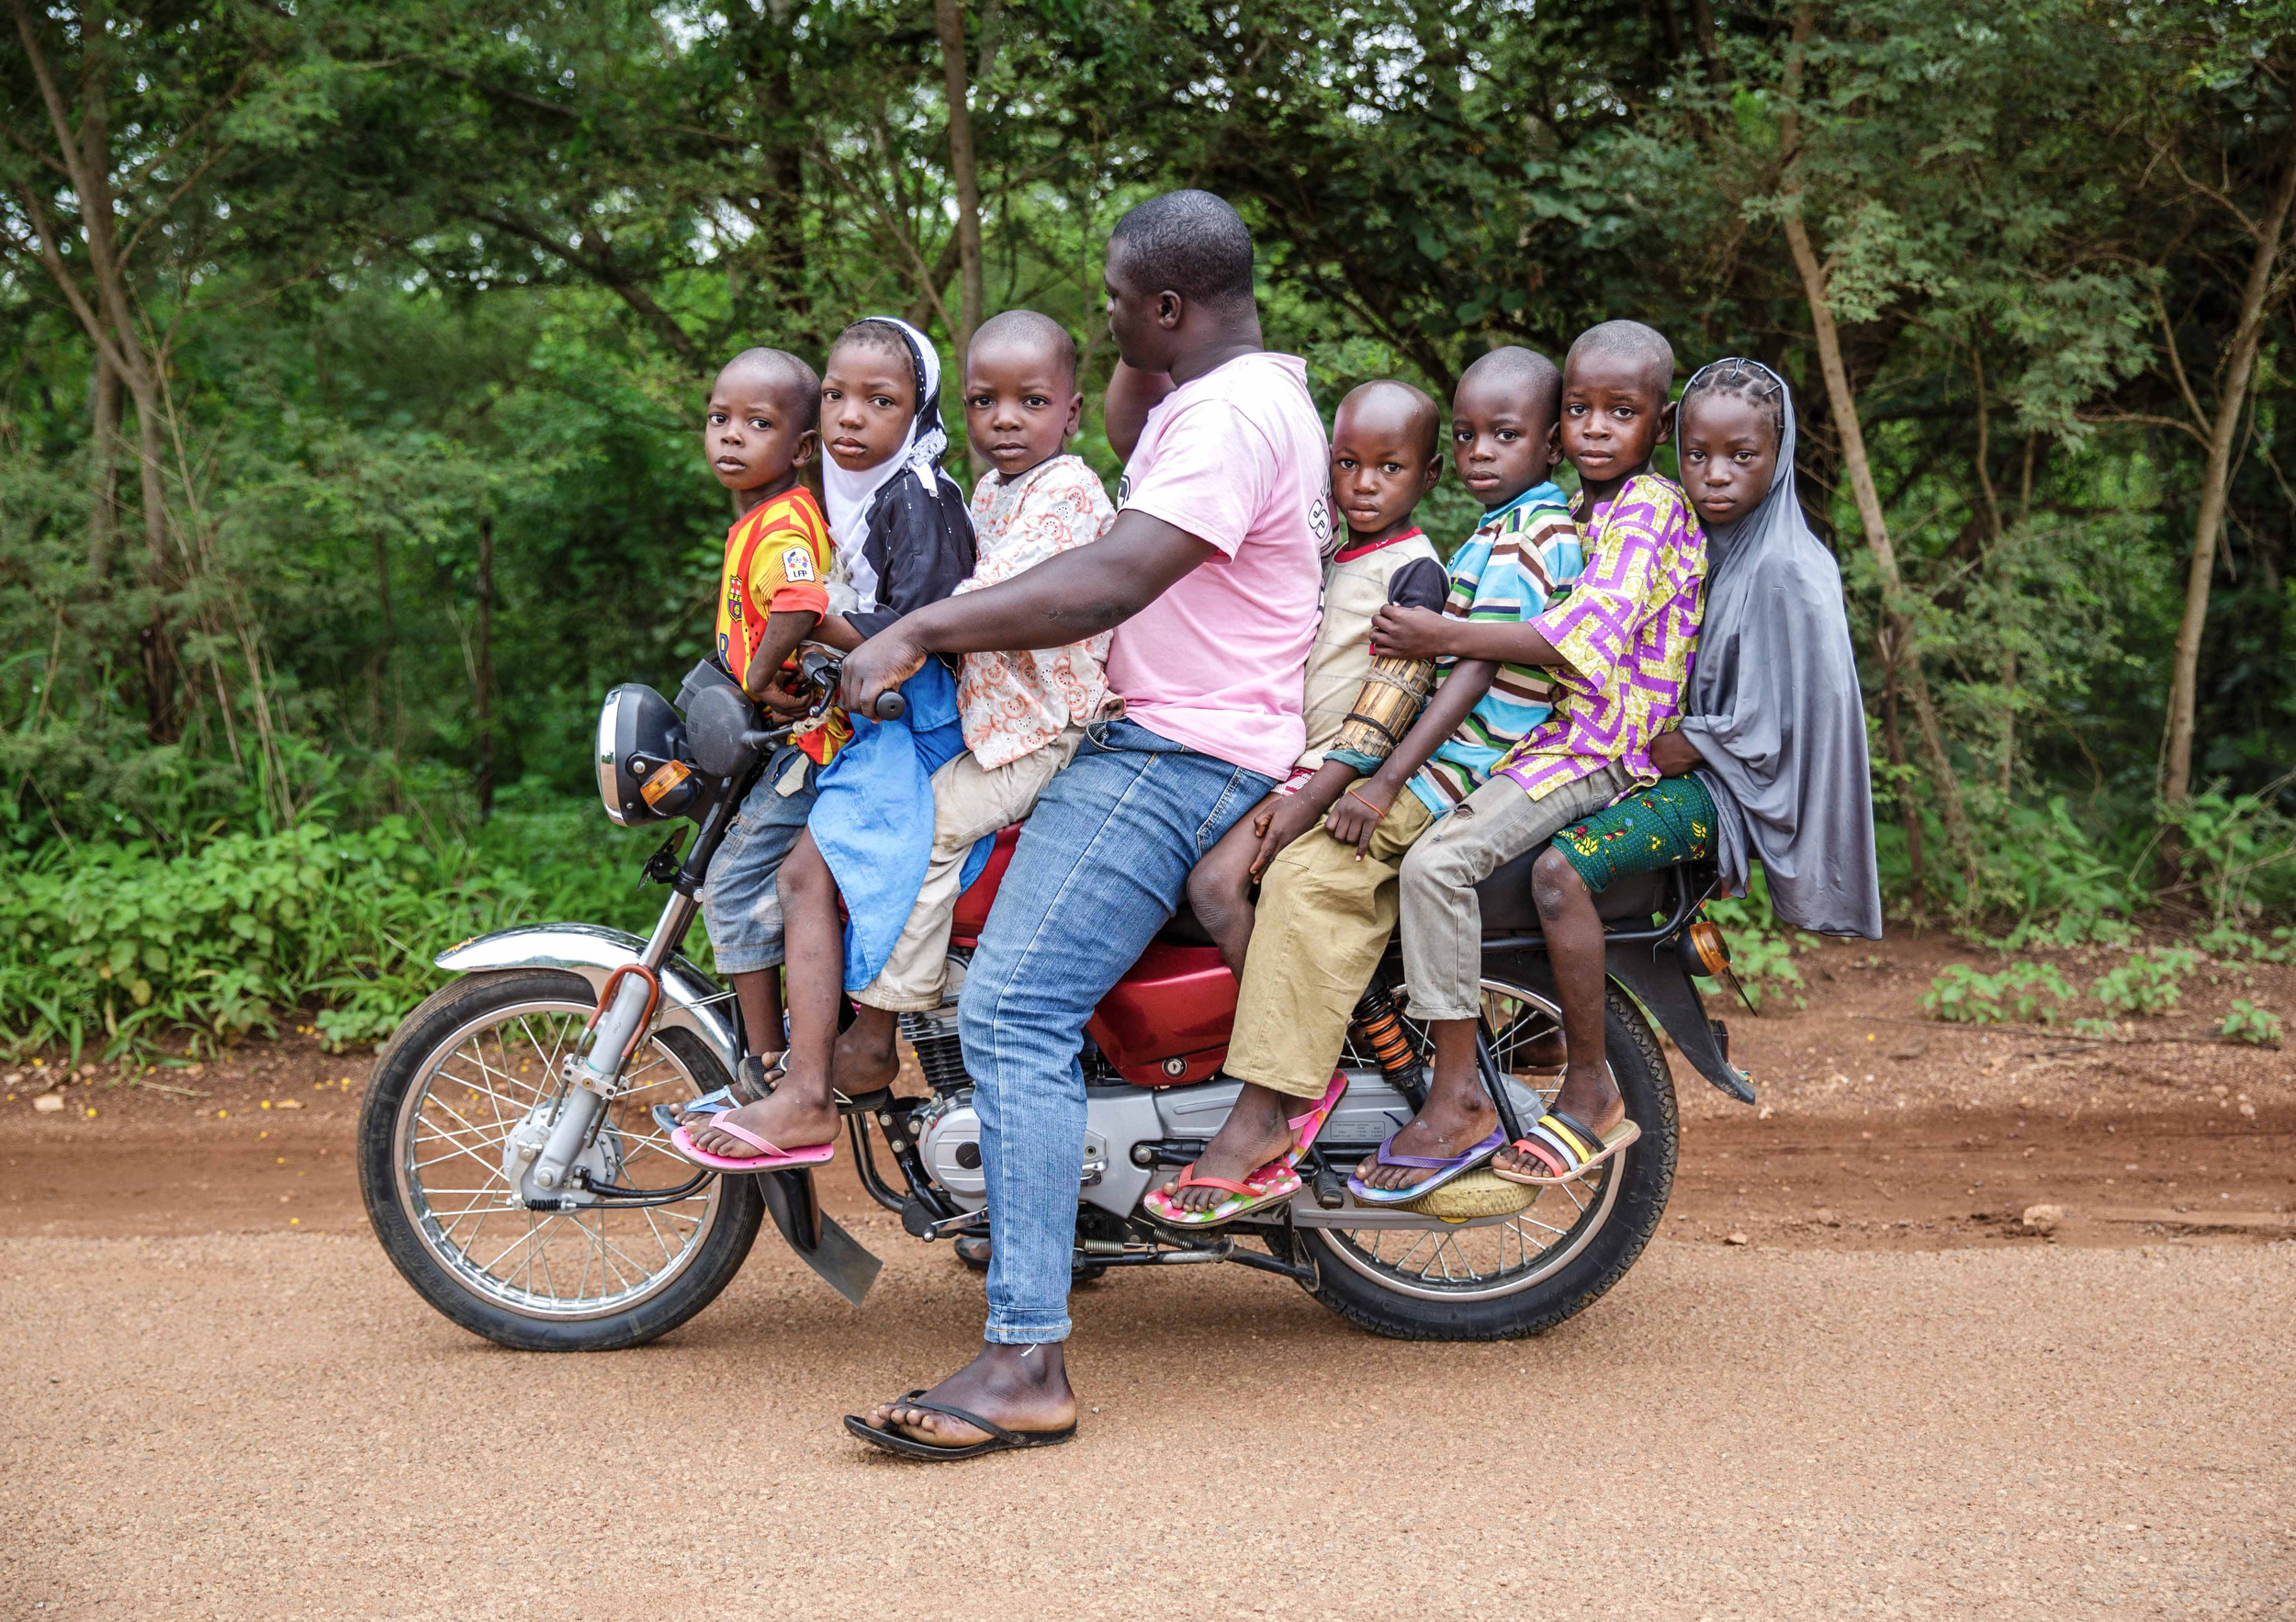 A man carrying 7 children on a motorcycle in Kwara Nigeria. (Tom Saater)